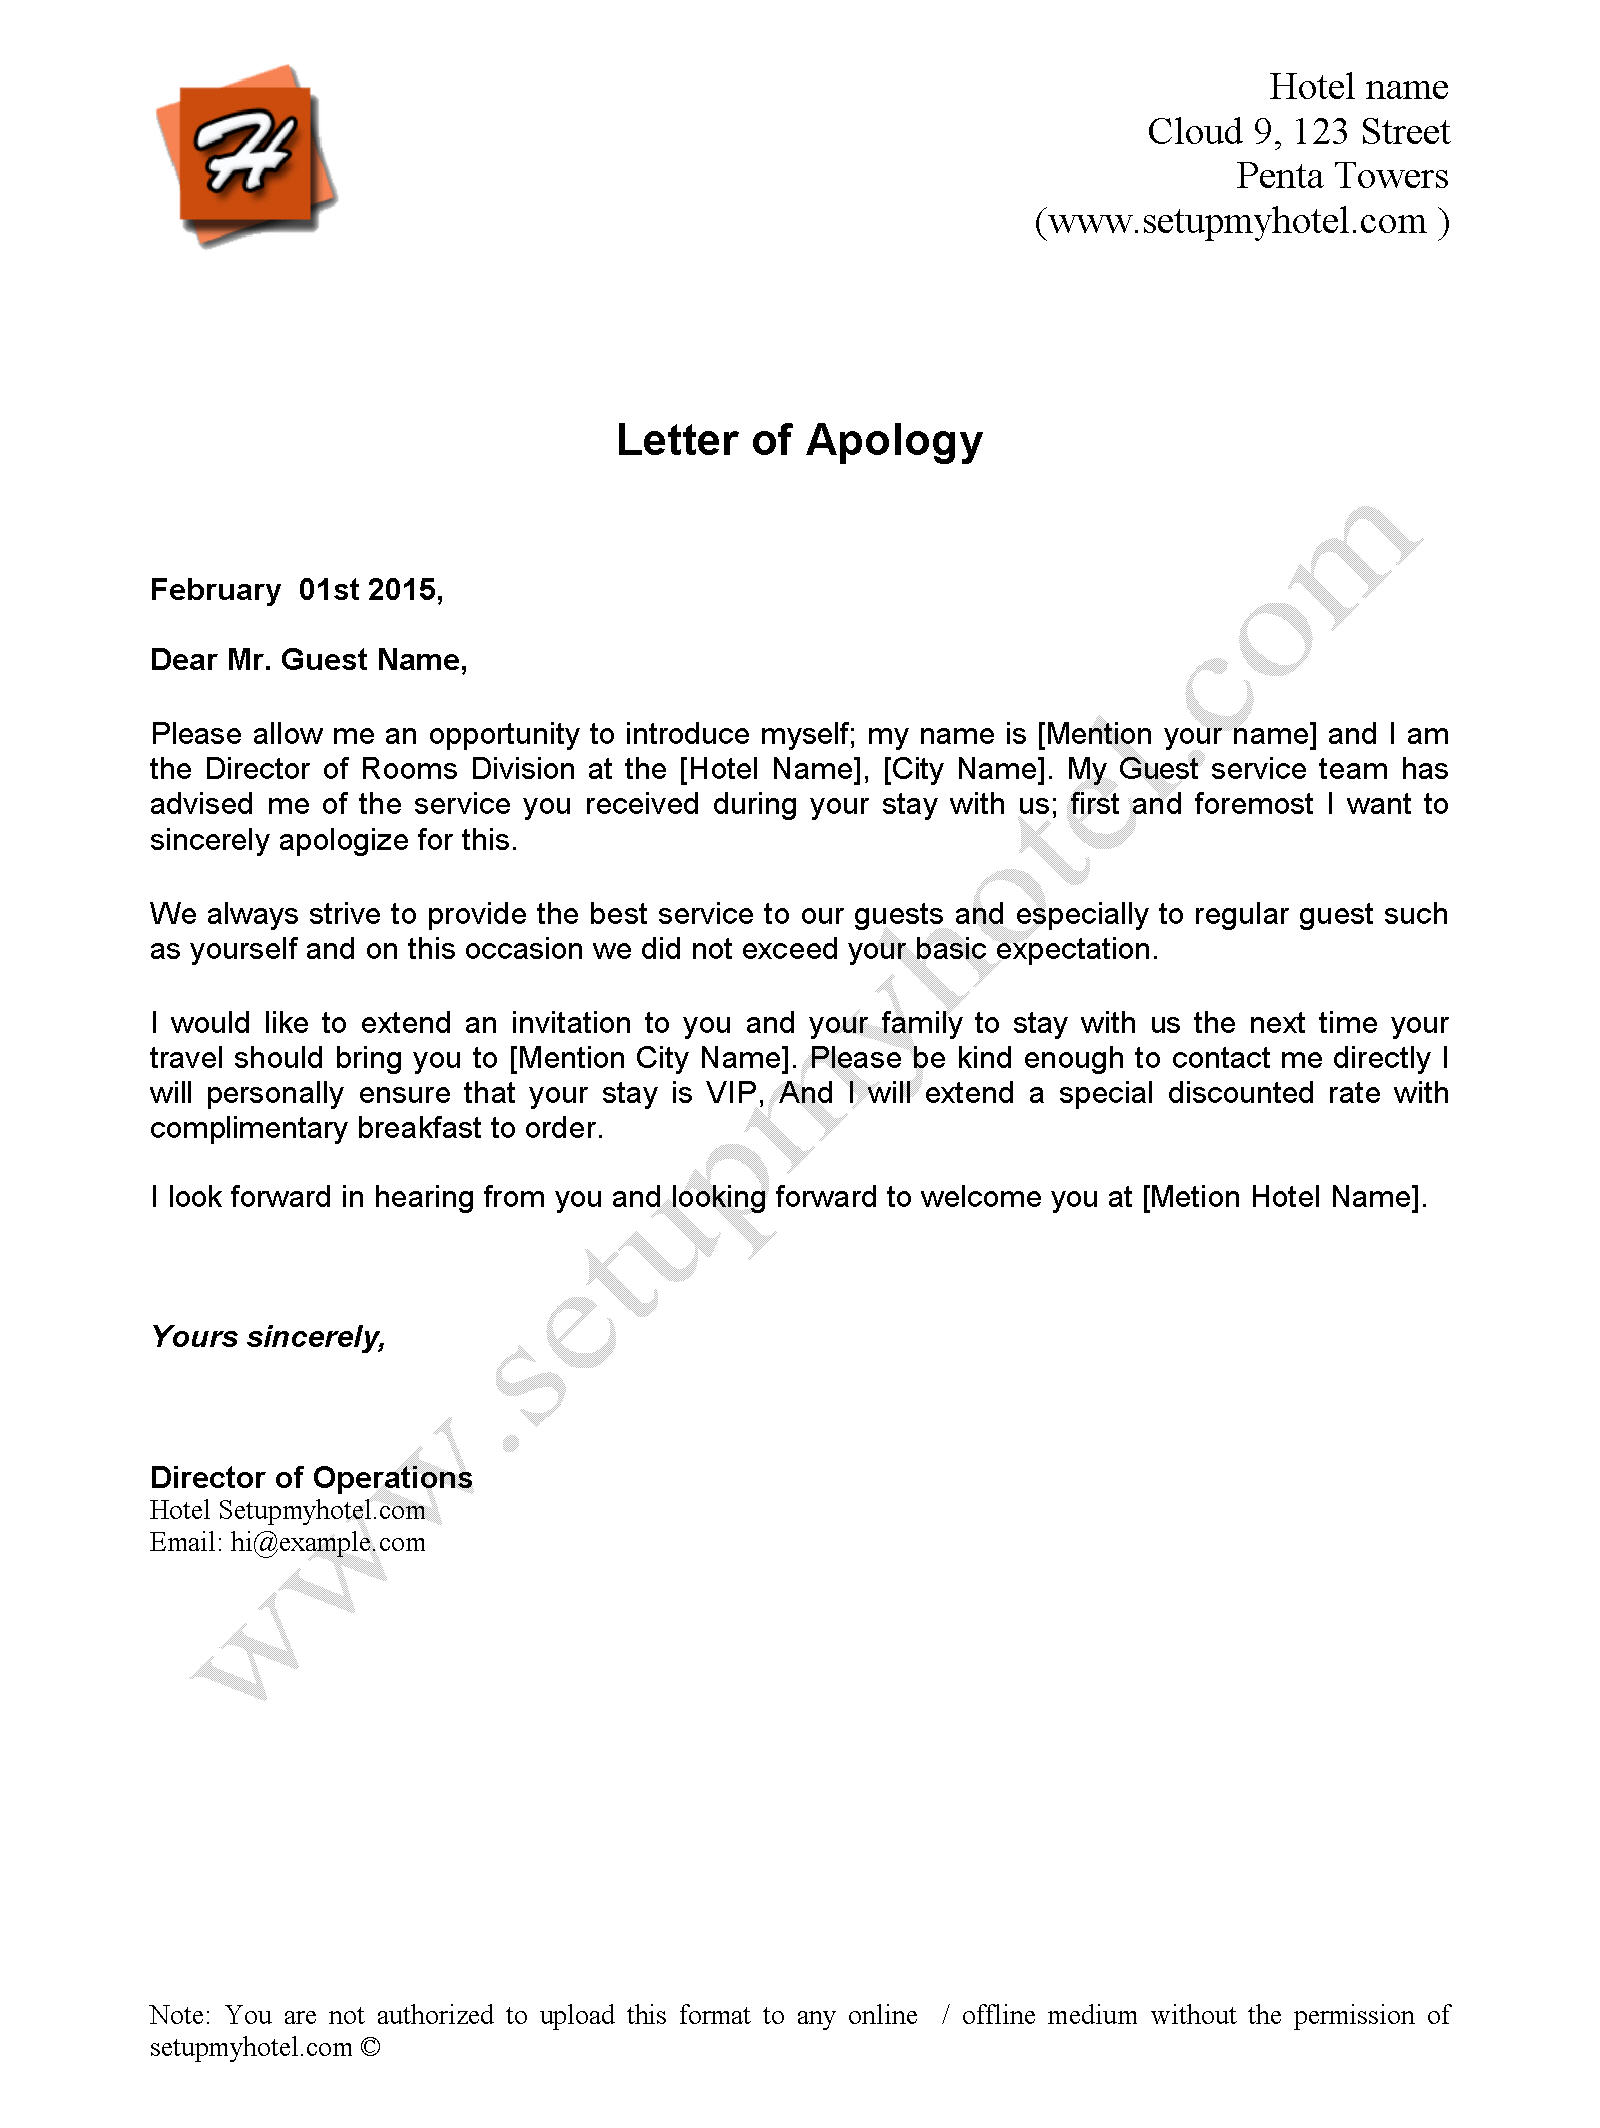 Apology Letter Sample Send to Hotel Guests – Sincere Apology Letter